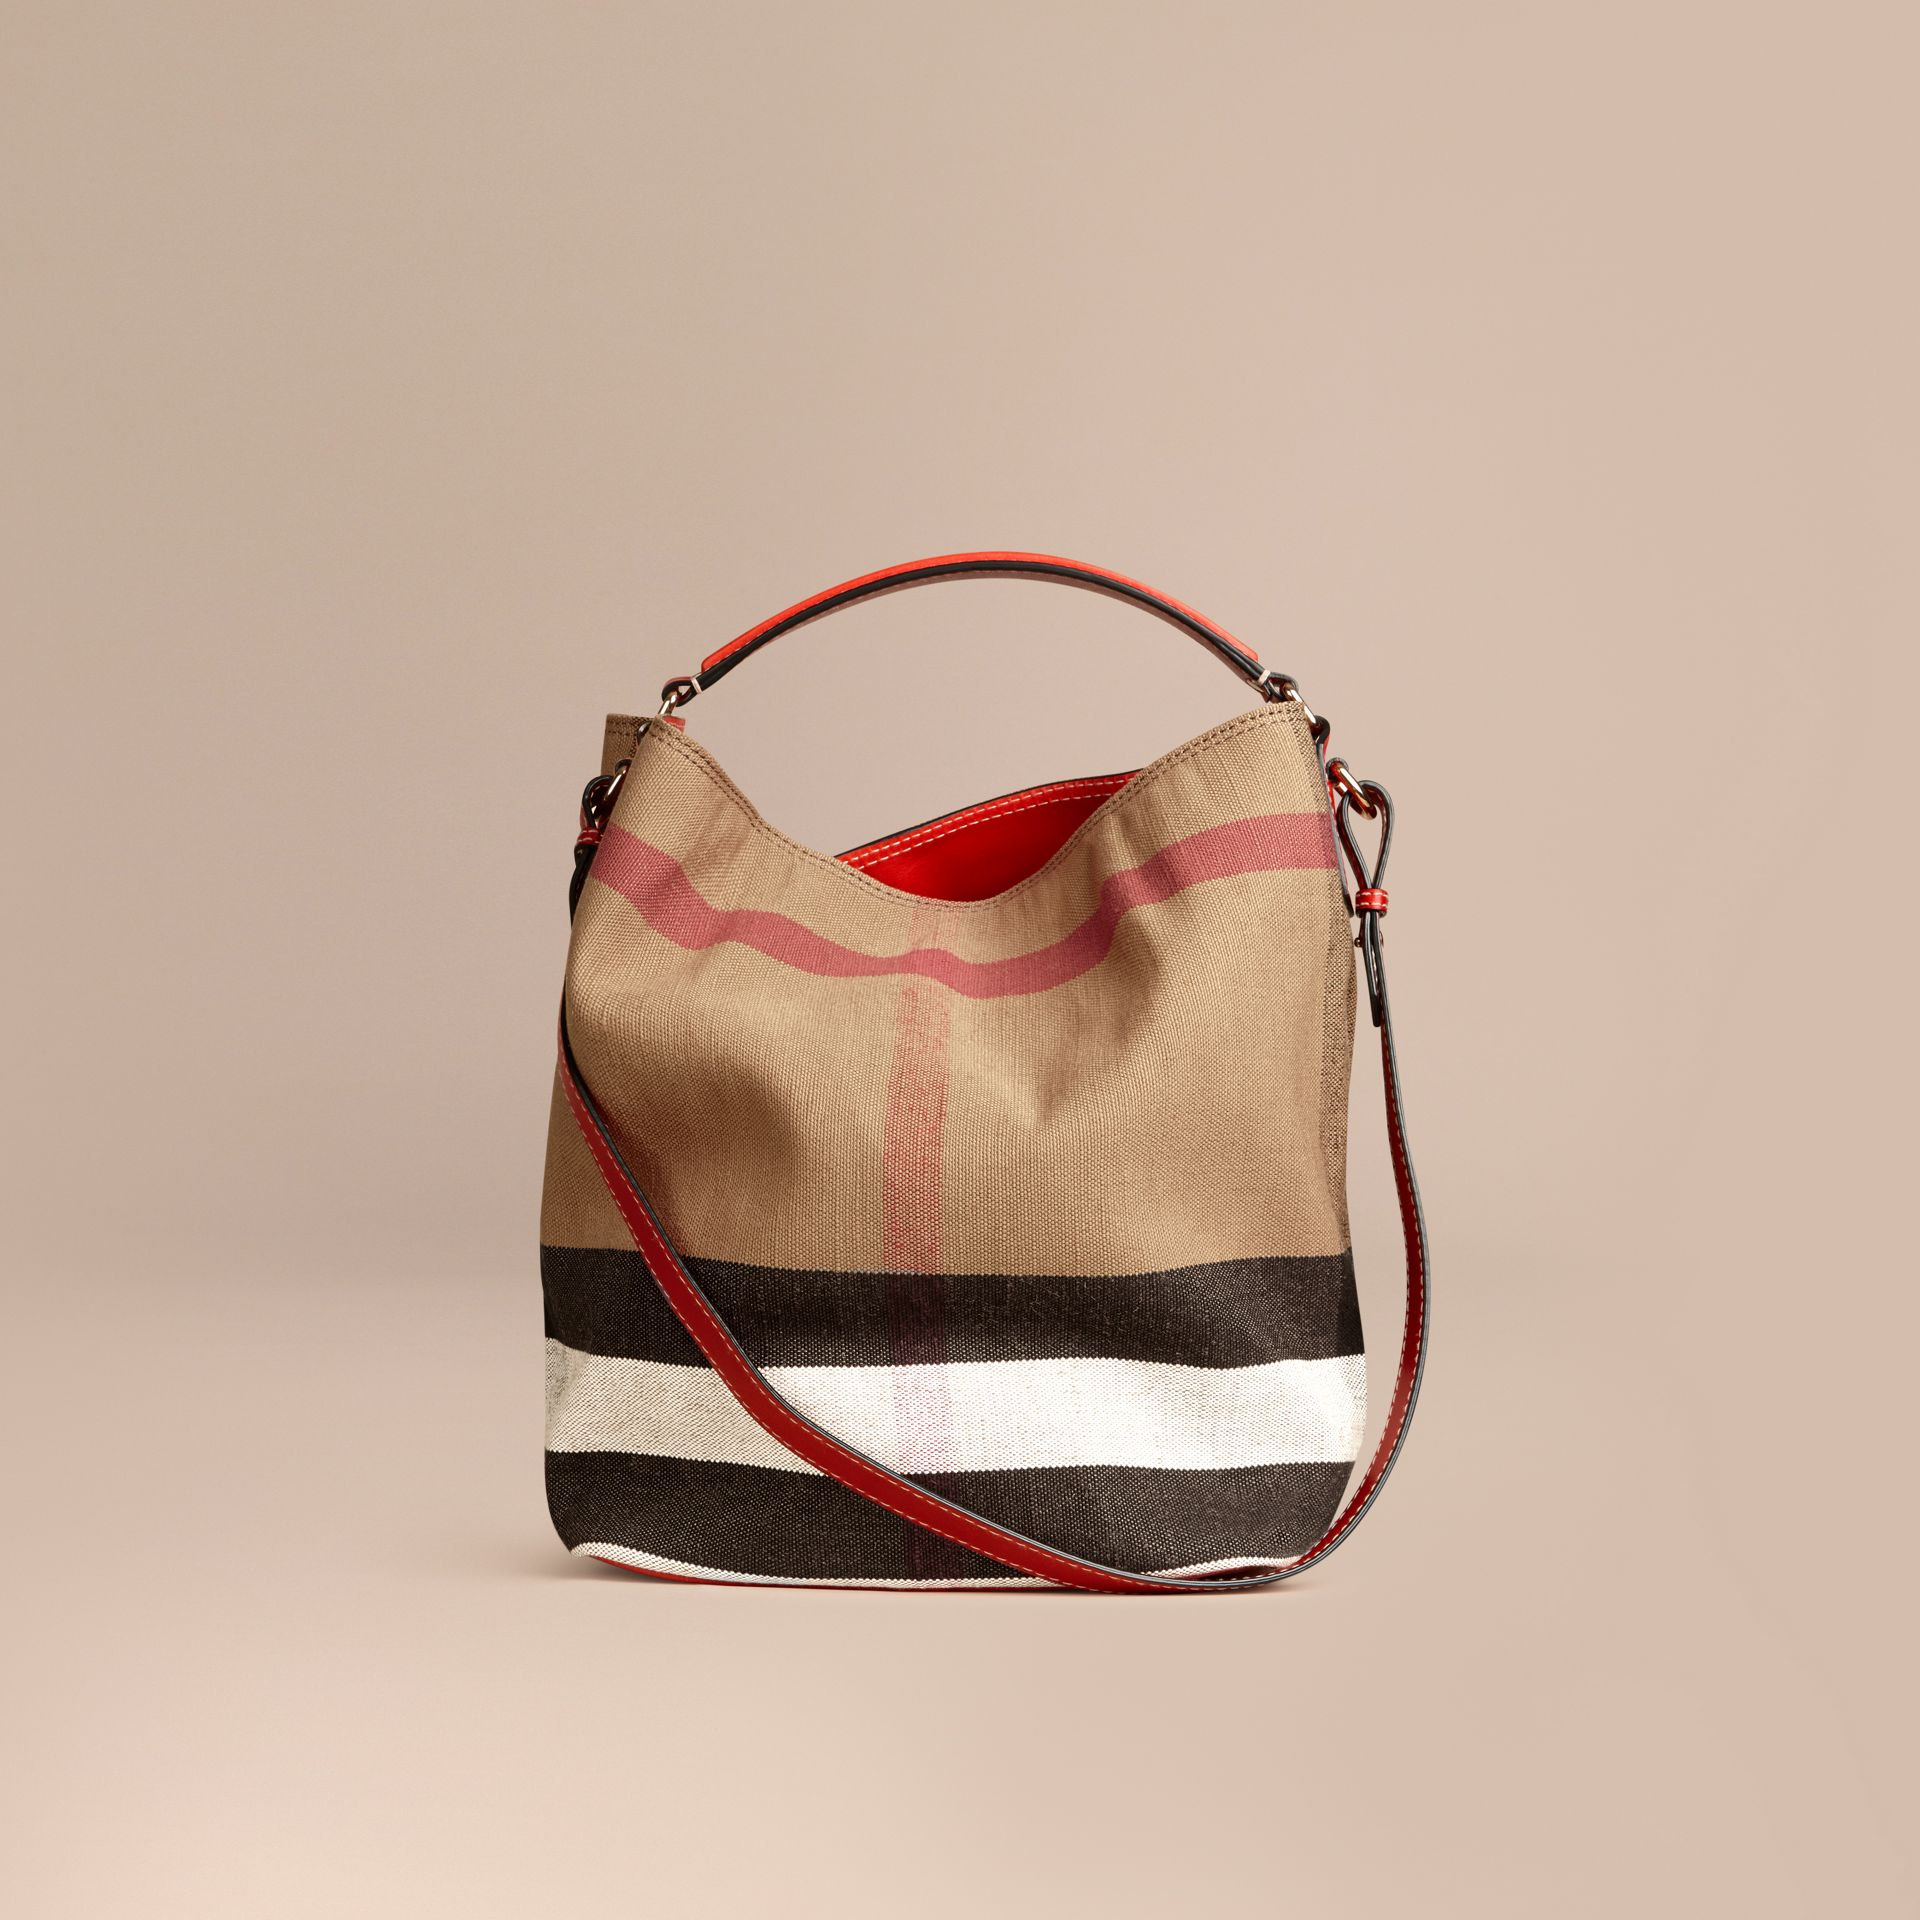 Medium Canvas Check Hobo Bag in Cadmium Red - Women | Burberry - gallery image 7